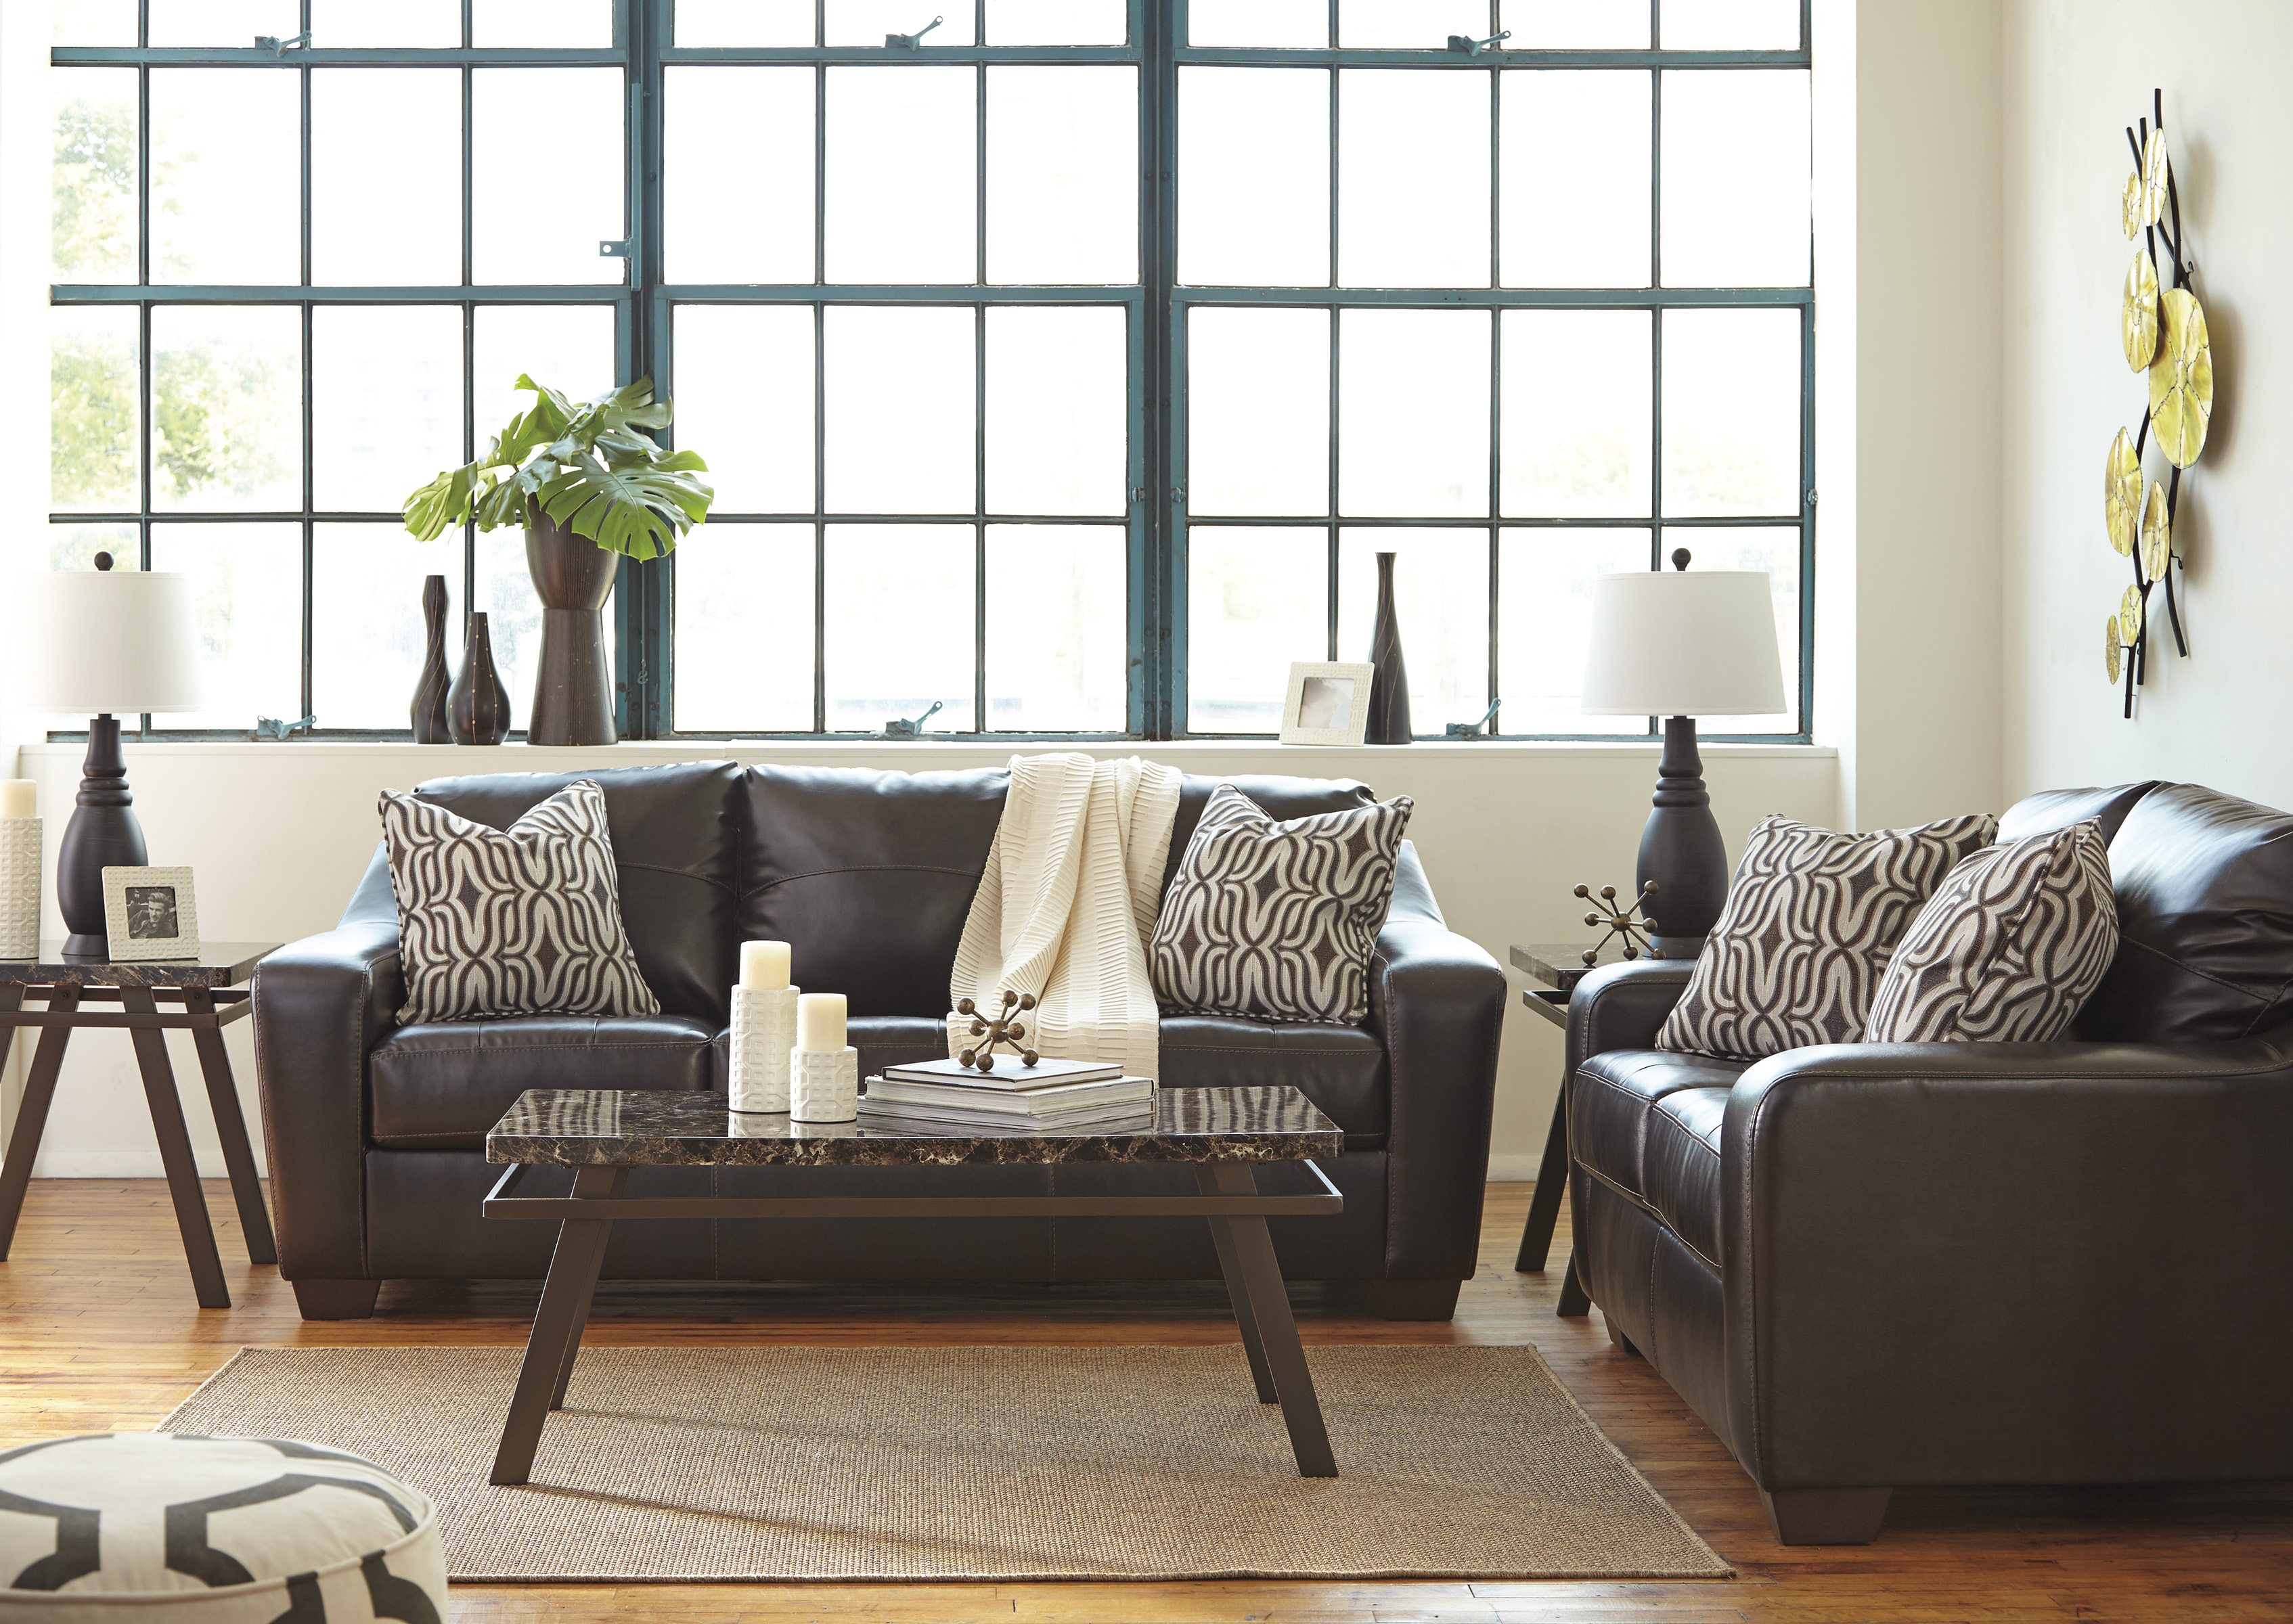 Coppell Living Room - All American Furniture - Buy 4 Less - Open to ...